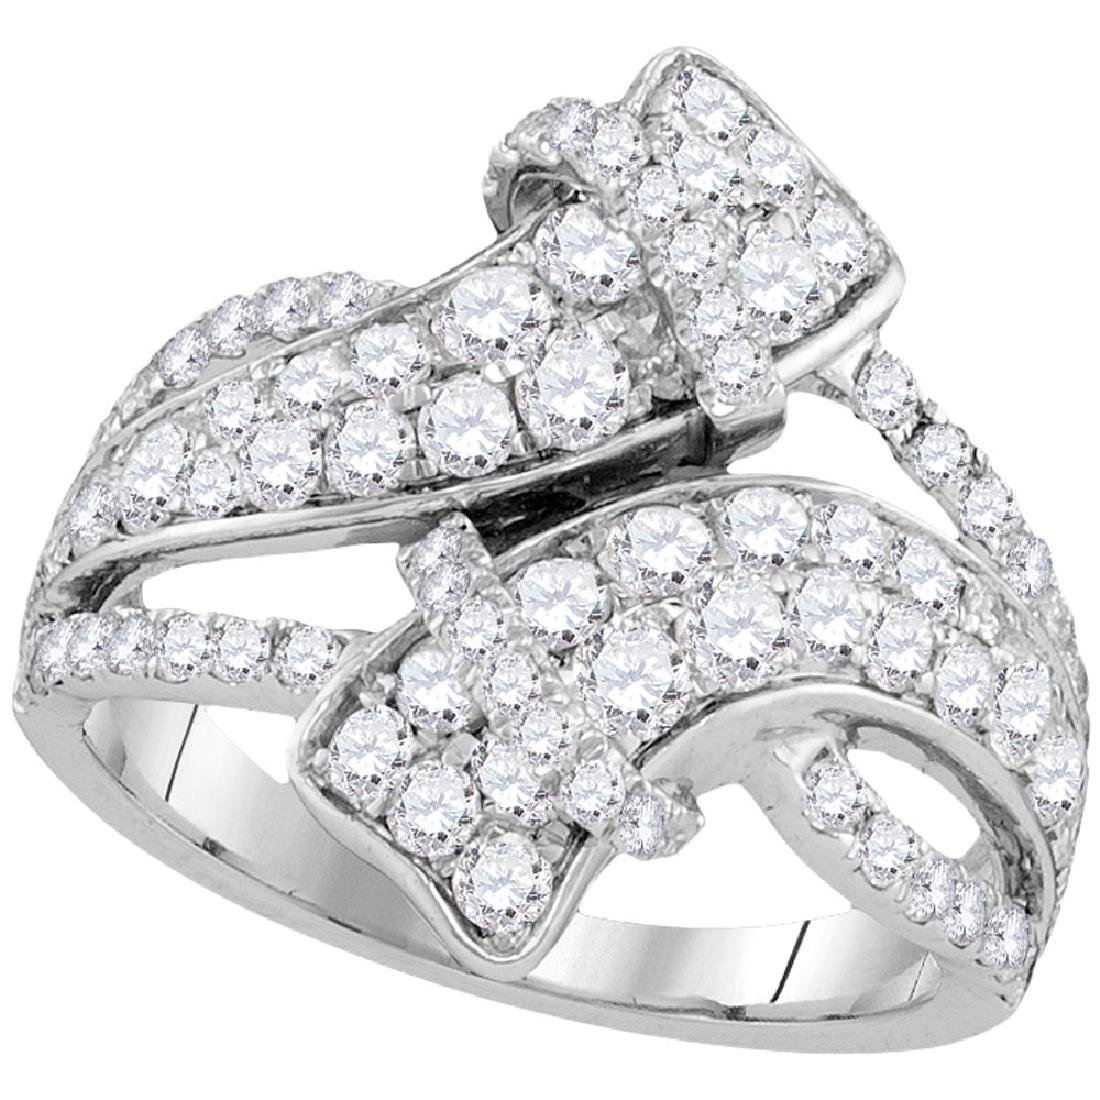 2 CTW Diamond Bypass Crossover Luxury Ring 14KT White